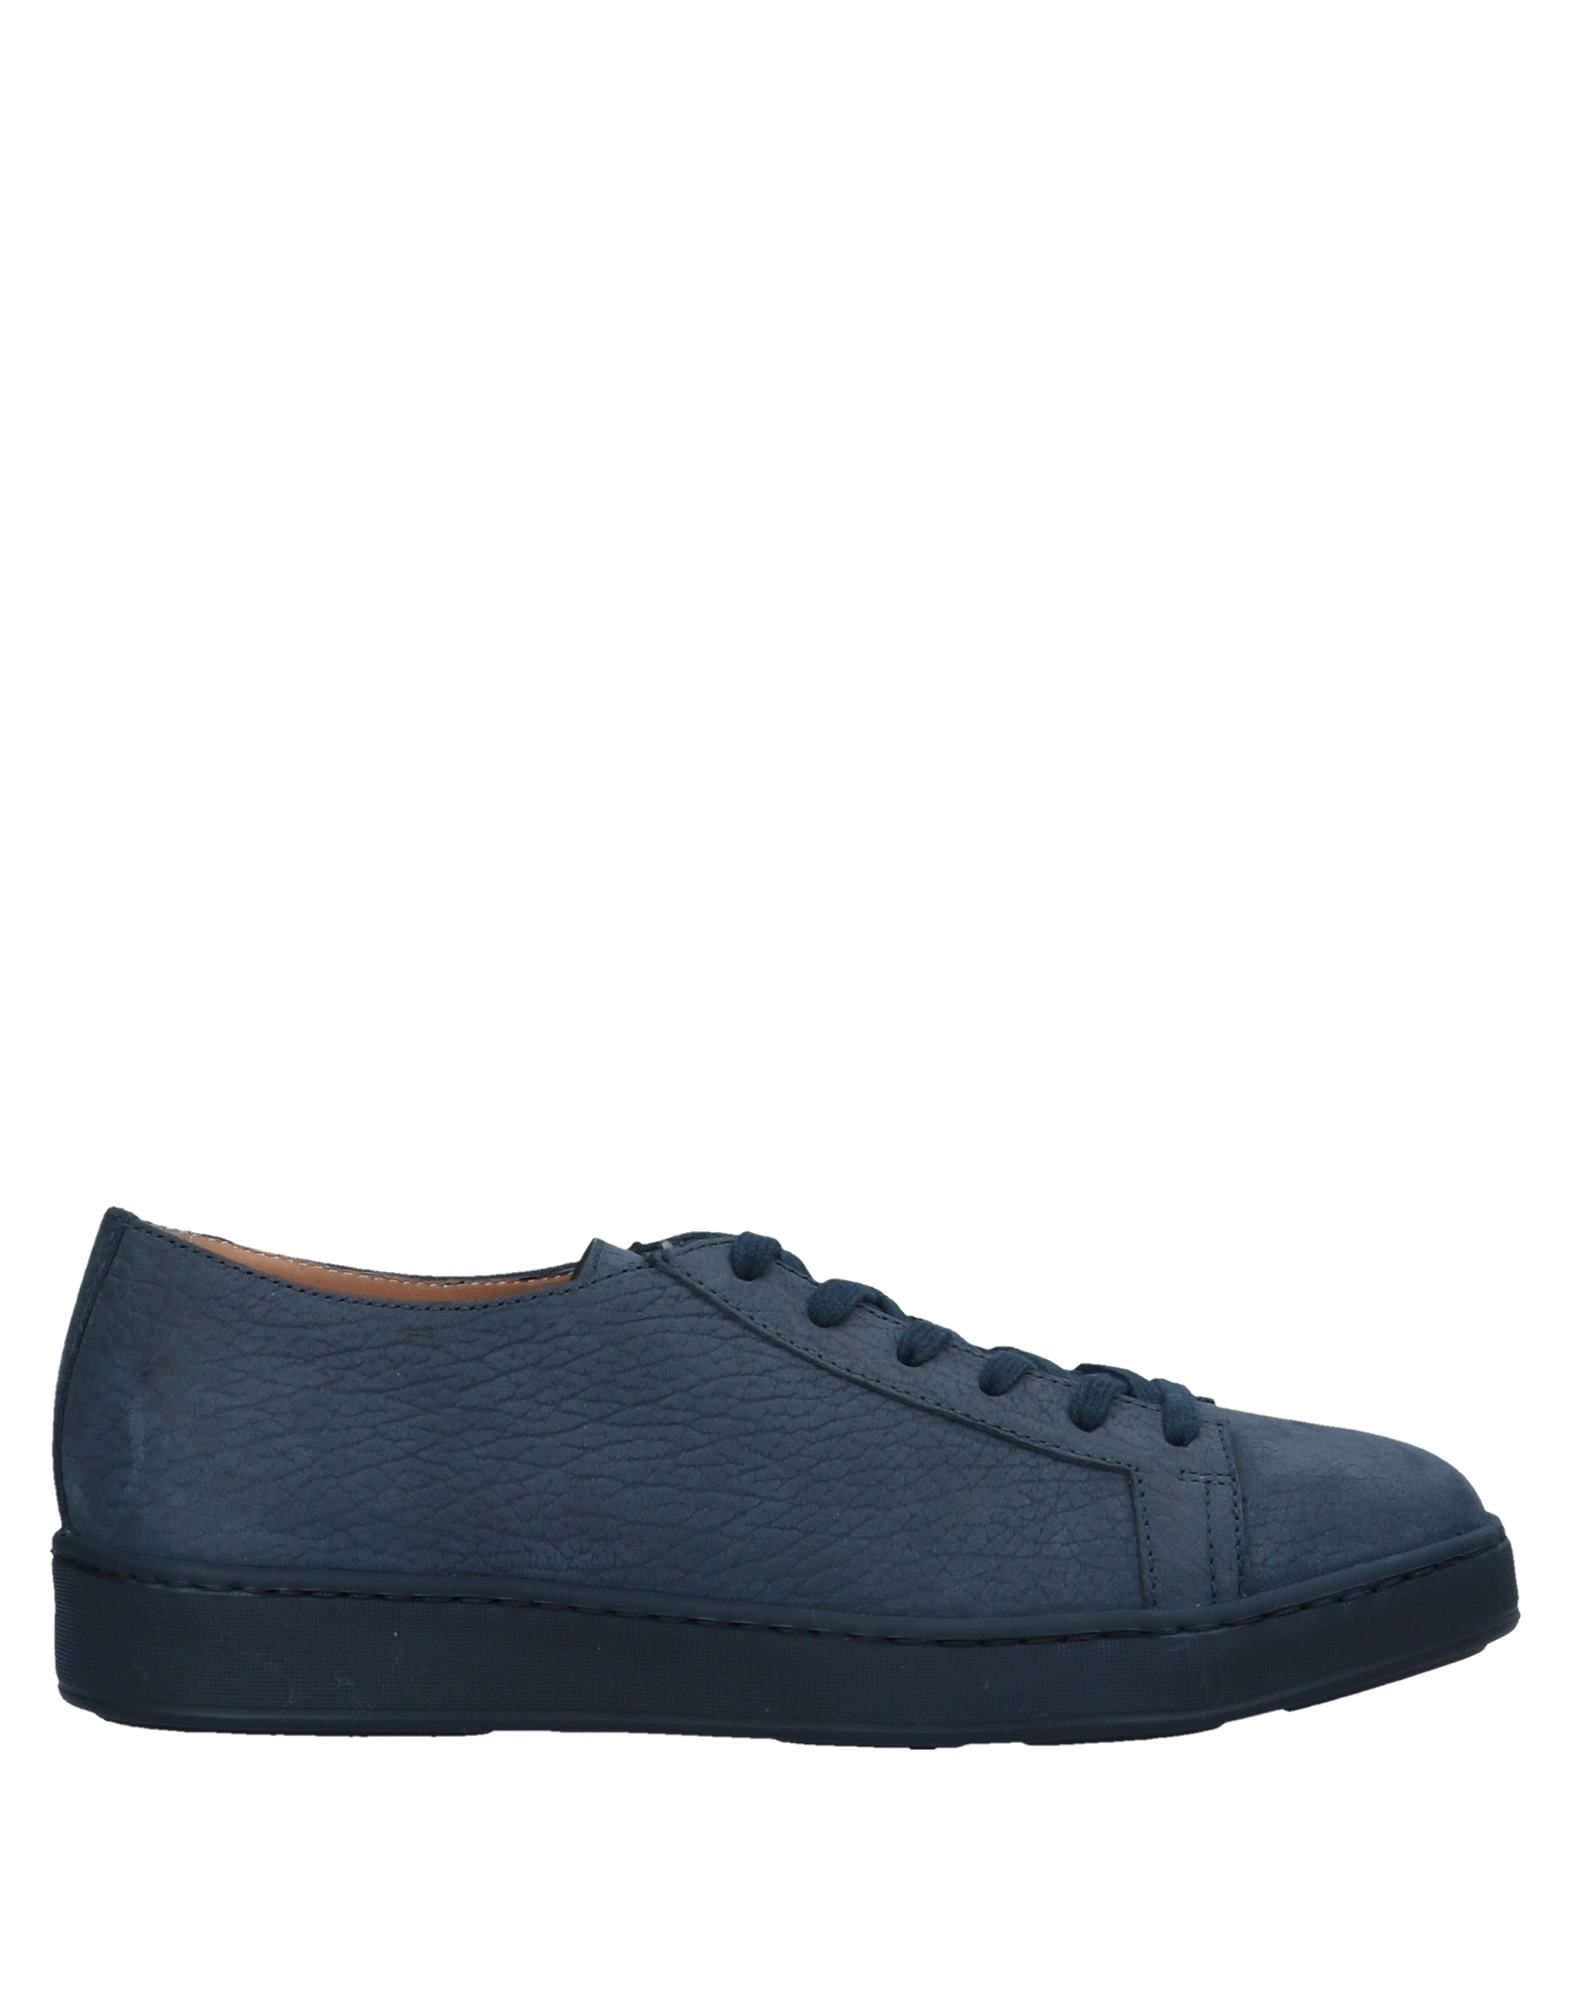 Santoni Sneakers - Women  Santoni Sneakers online on  Women United Kingdom - 11543286QH 84a4dd